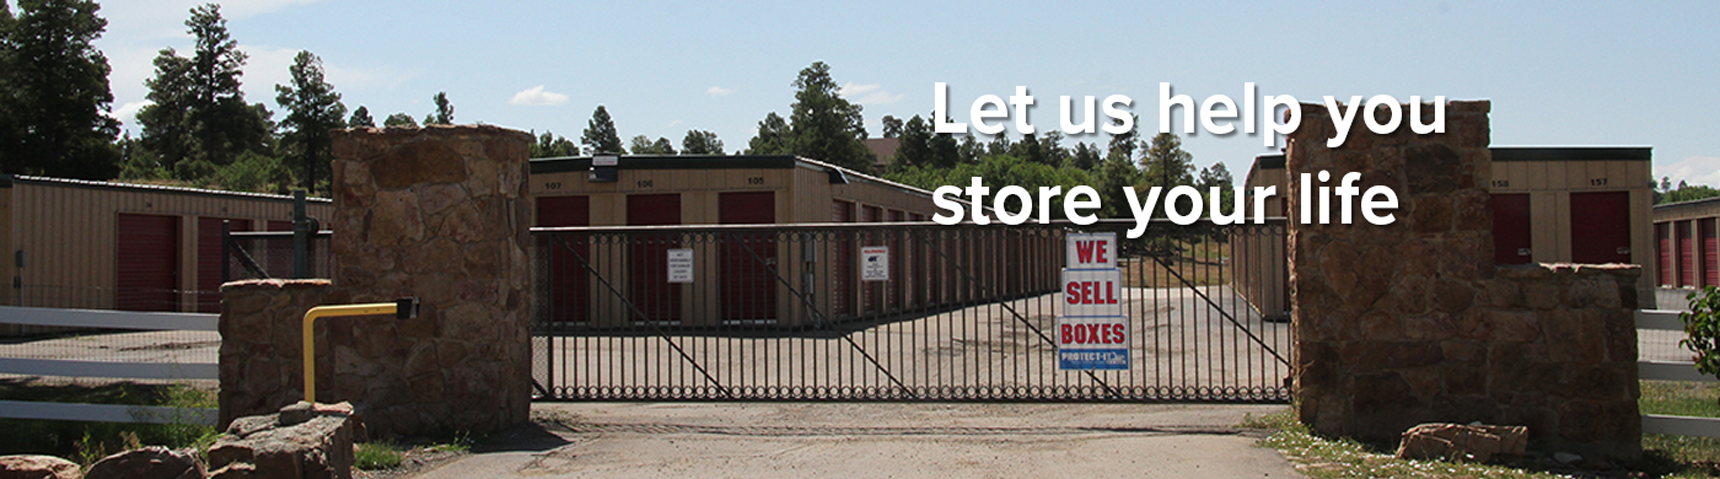 Let us help you store your life